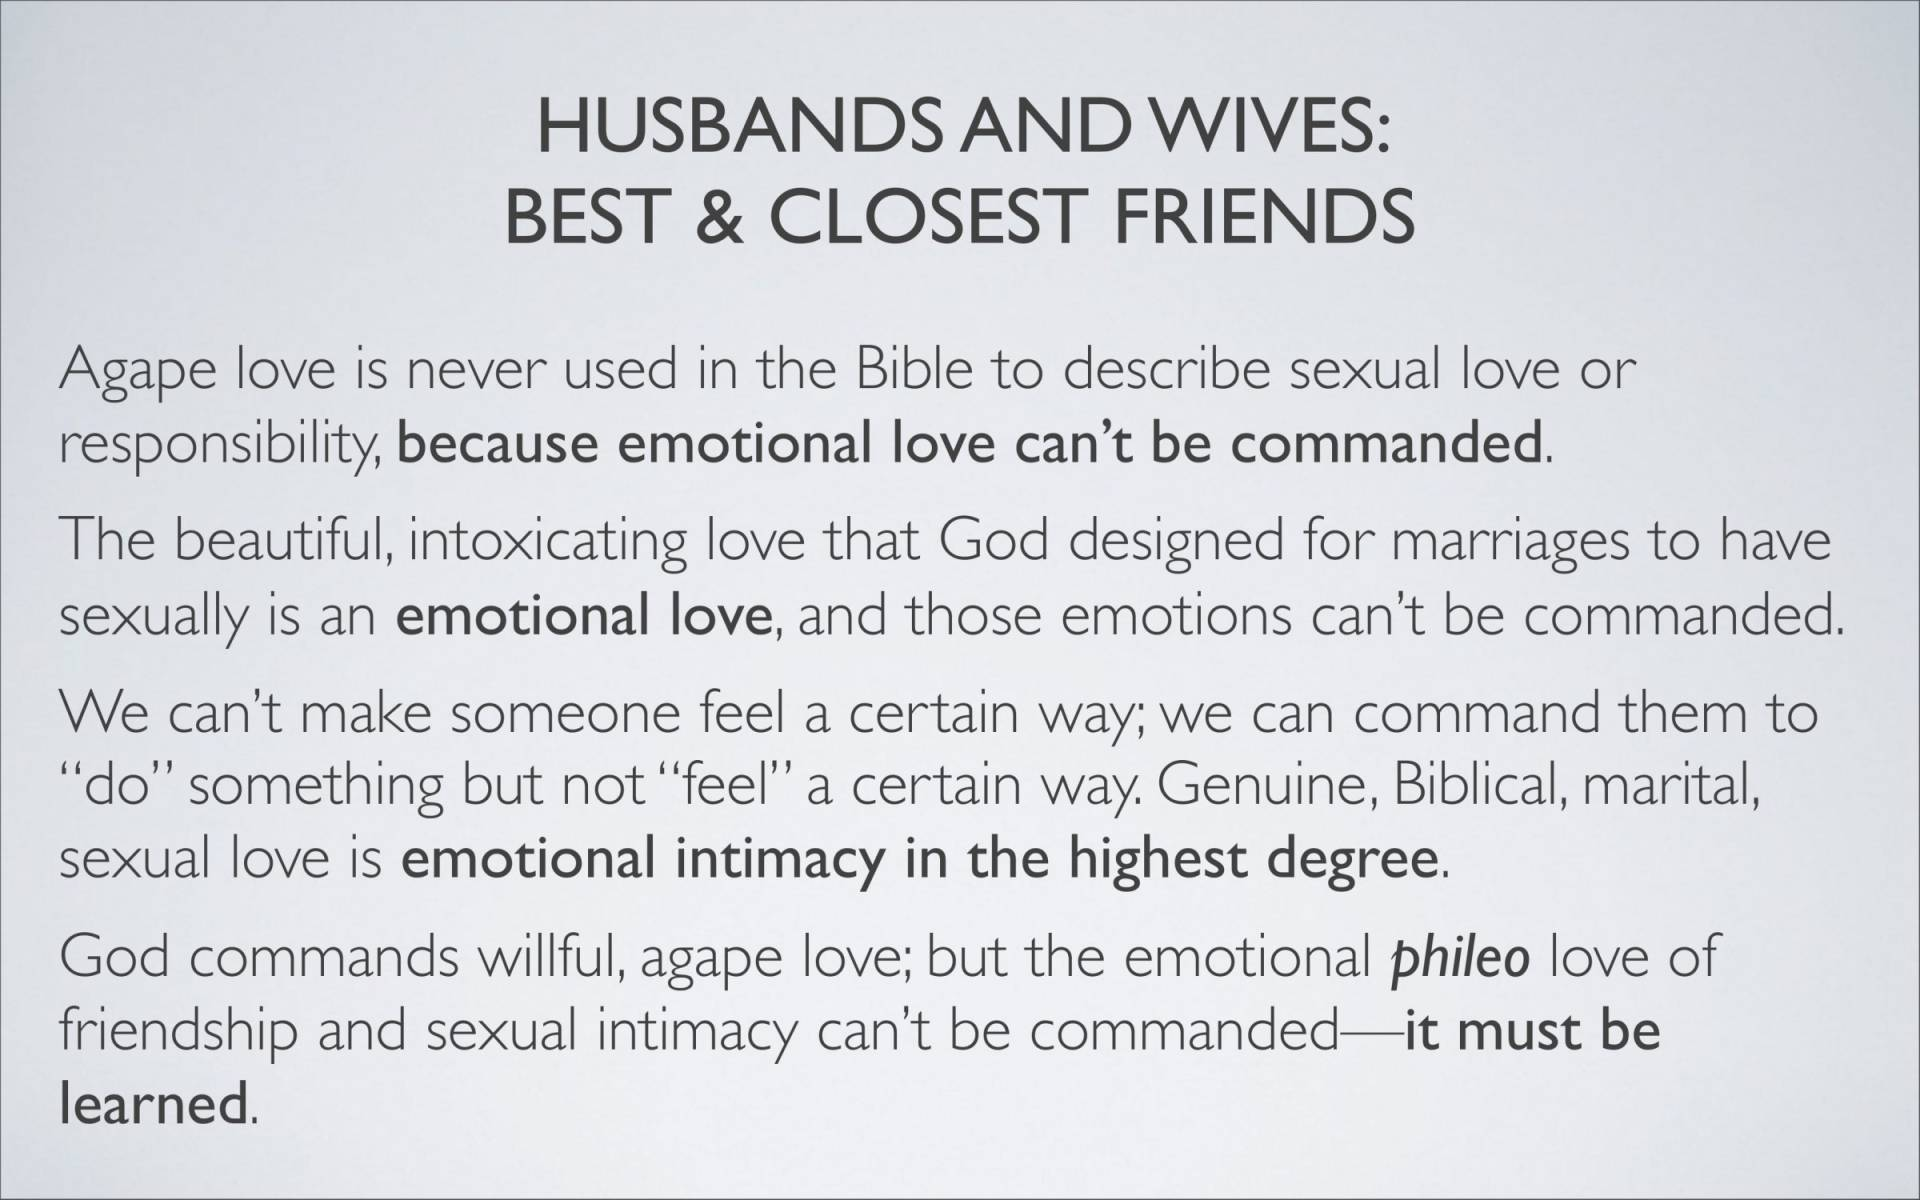 BC&D-38 - Lesson 15-2 - The Marriage Relationship - Wives-18